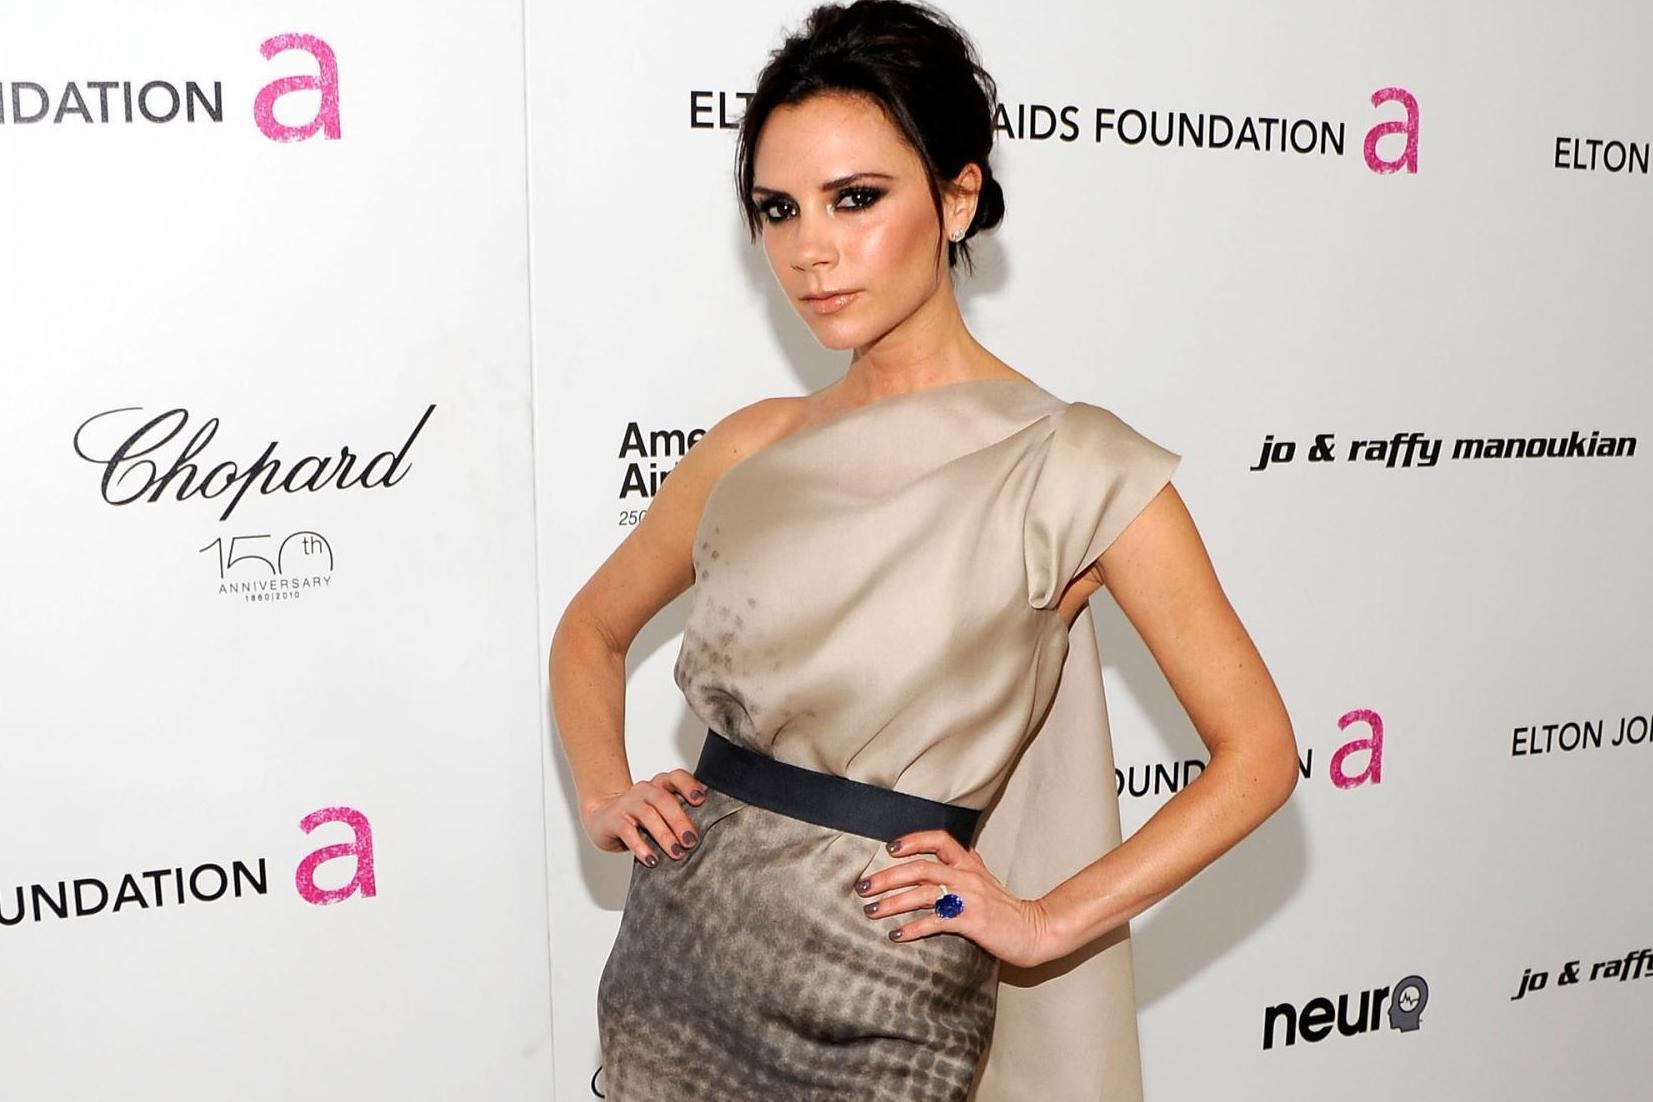 Victoria Beckham Launches YouTube Channel For Fashion And